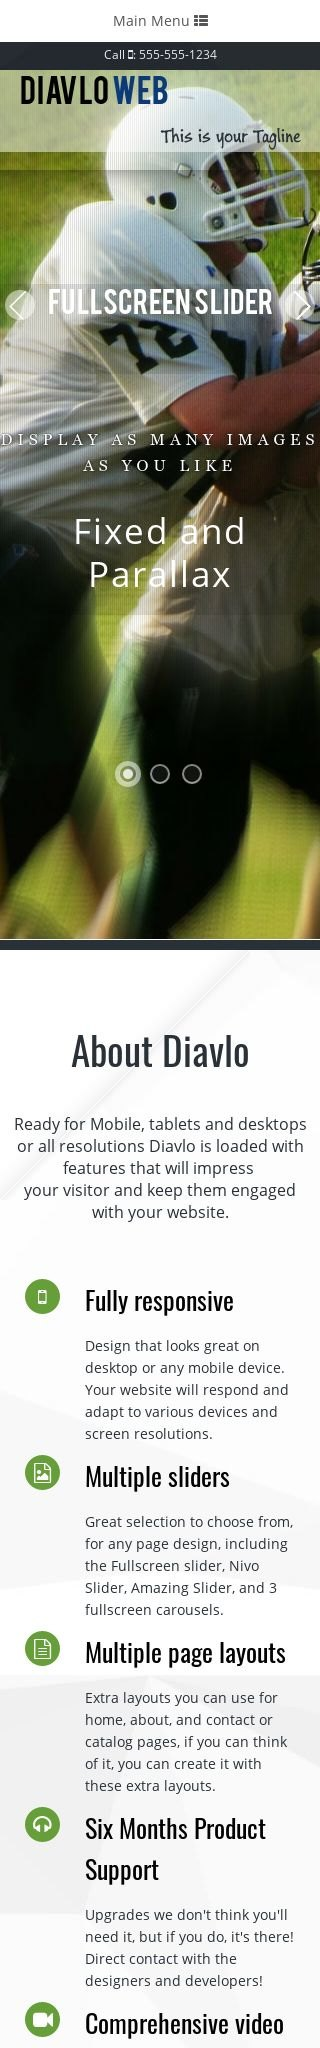 Mobile: Football Dreamweaver Template